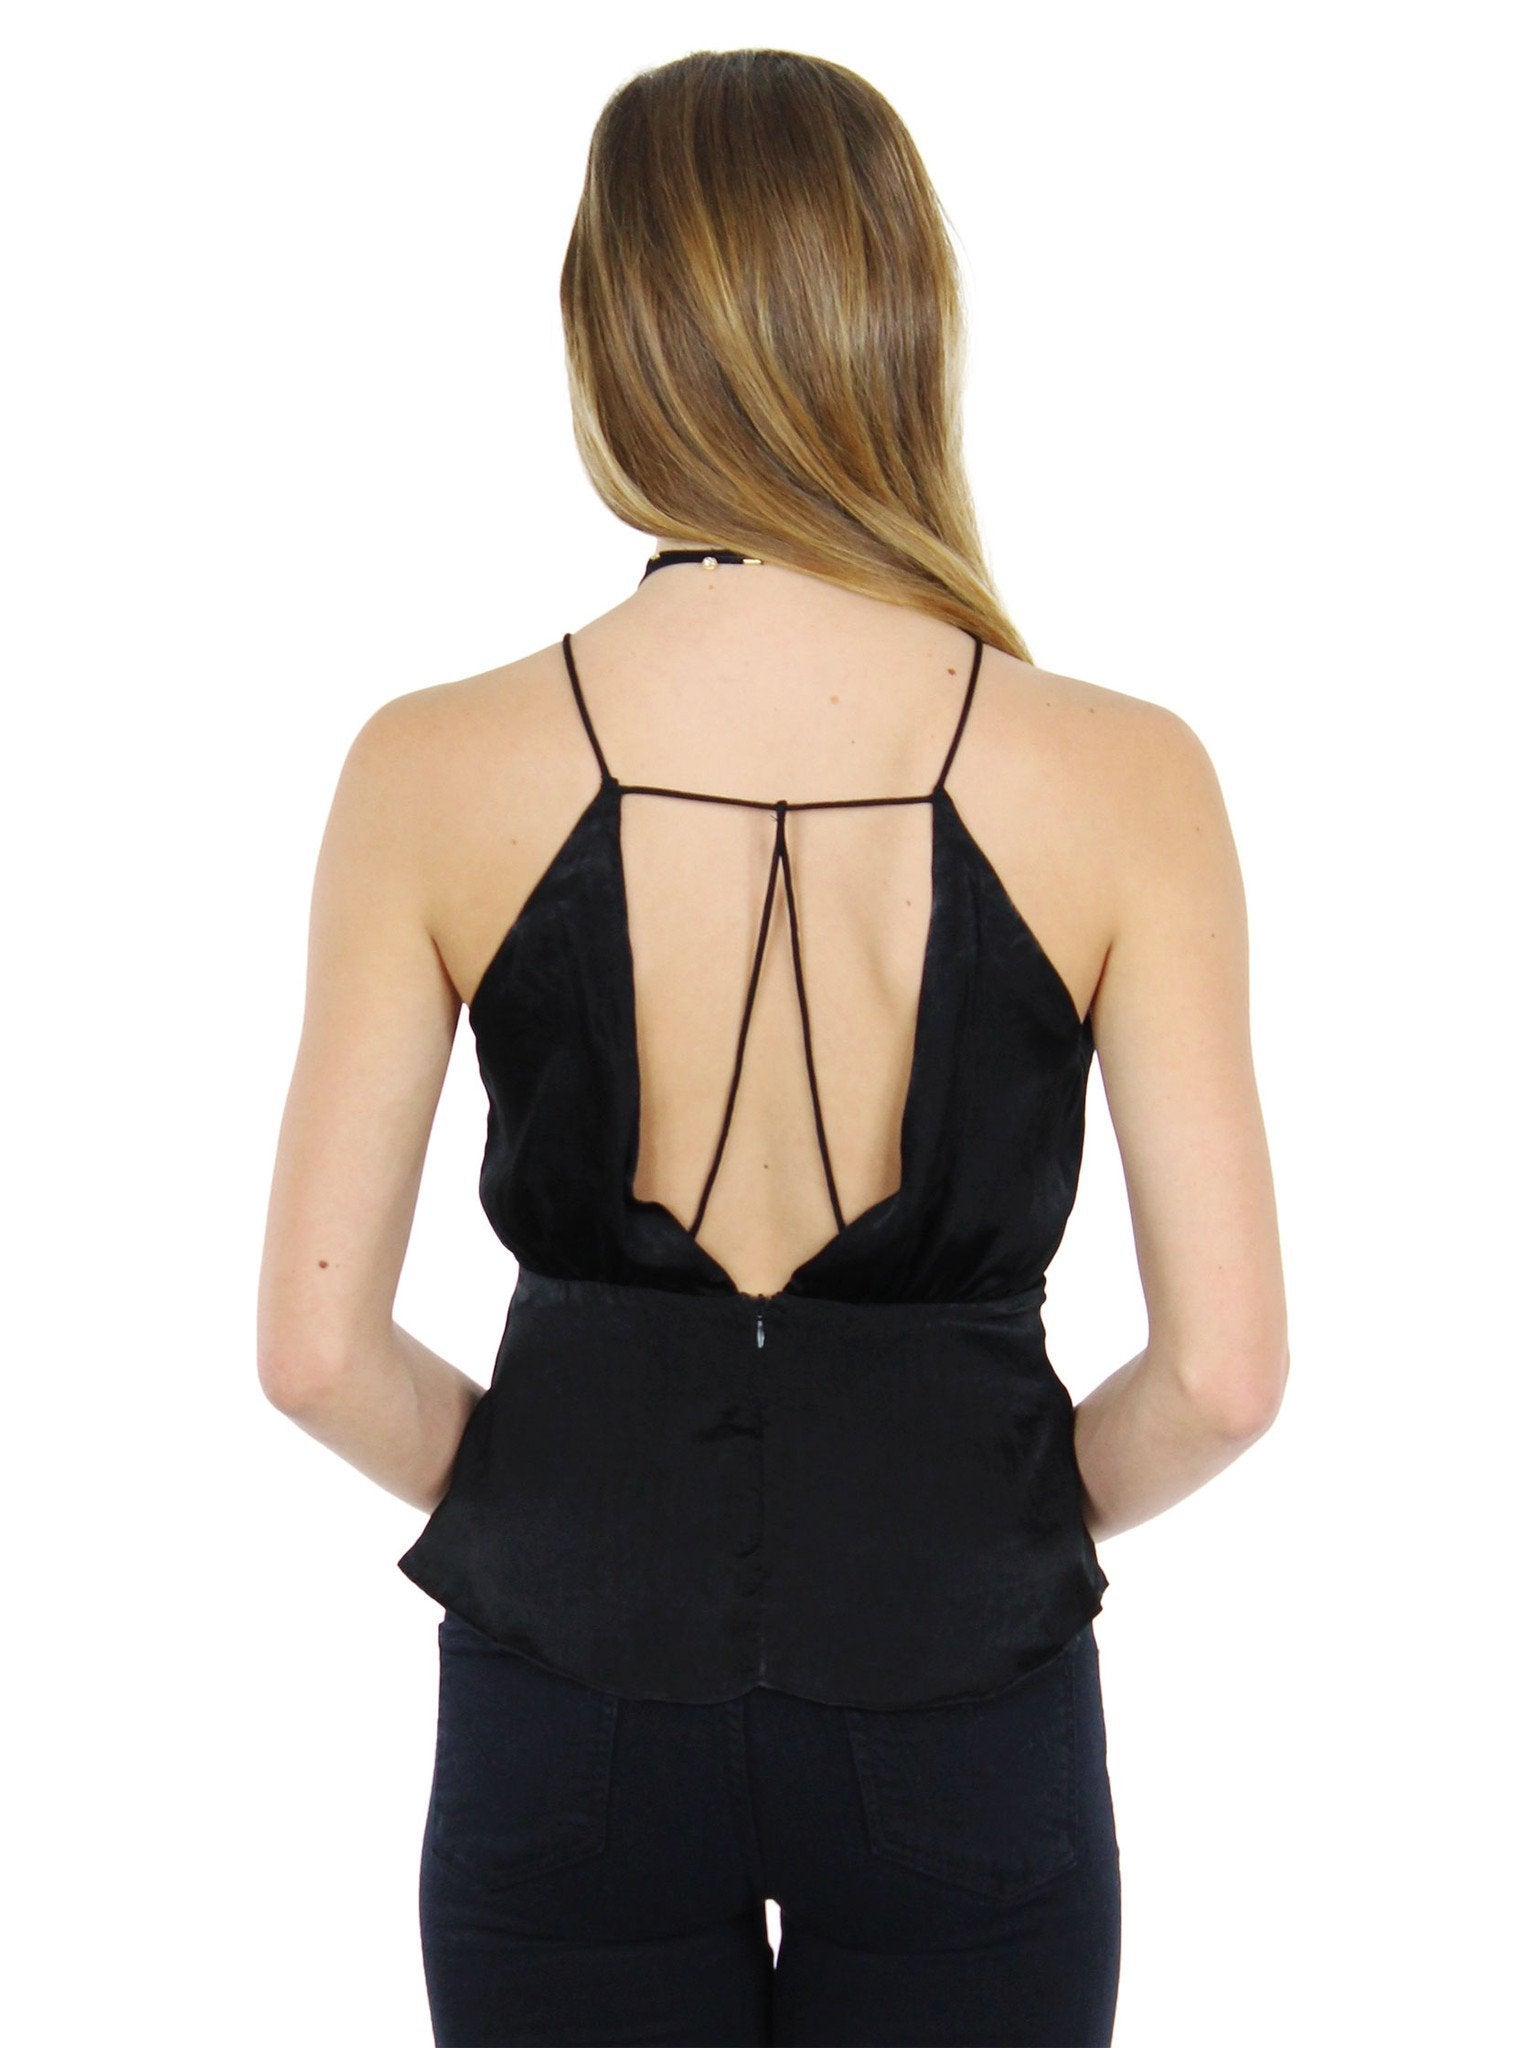 Woman wearing a top rental from Lush called One Fine Evening Black Satin Top